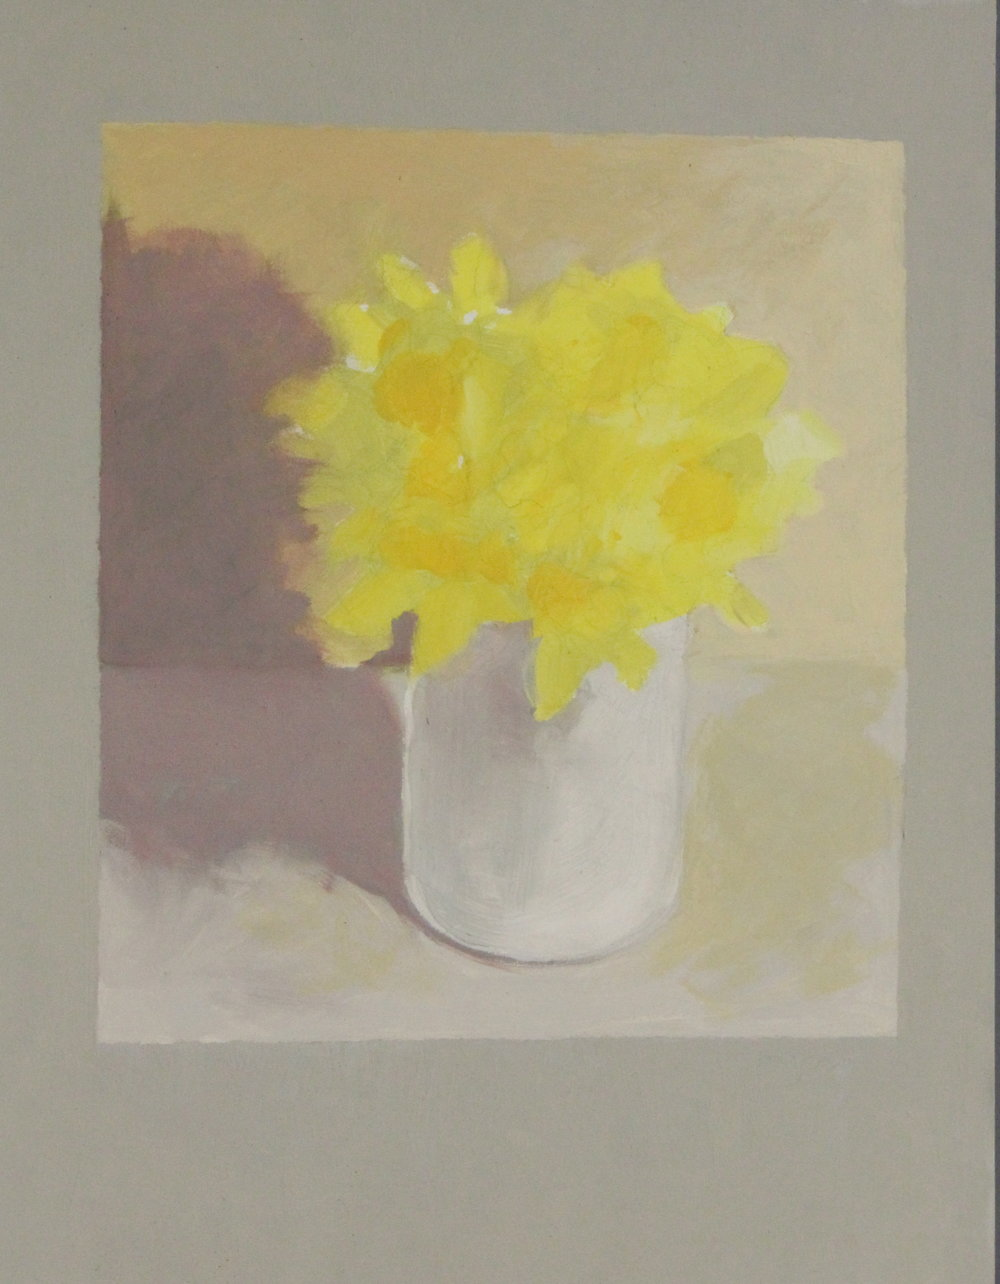 Flower #3 (Yellow Flower)- 11x14%22 (8.5x9.5%22) .JPG